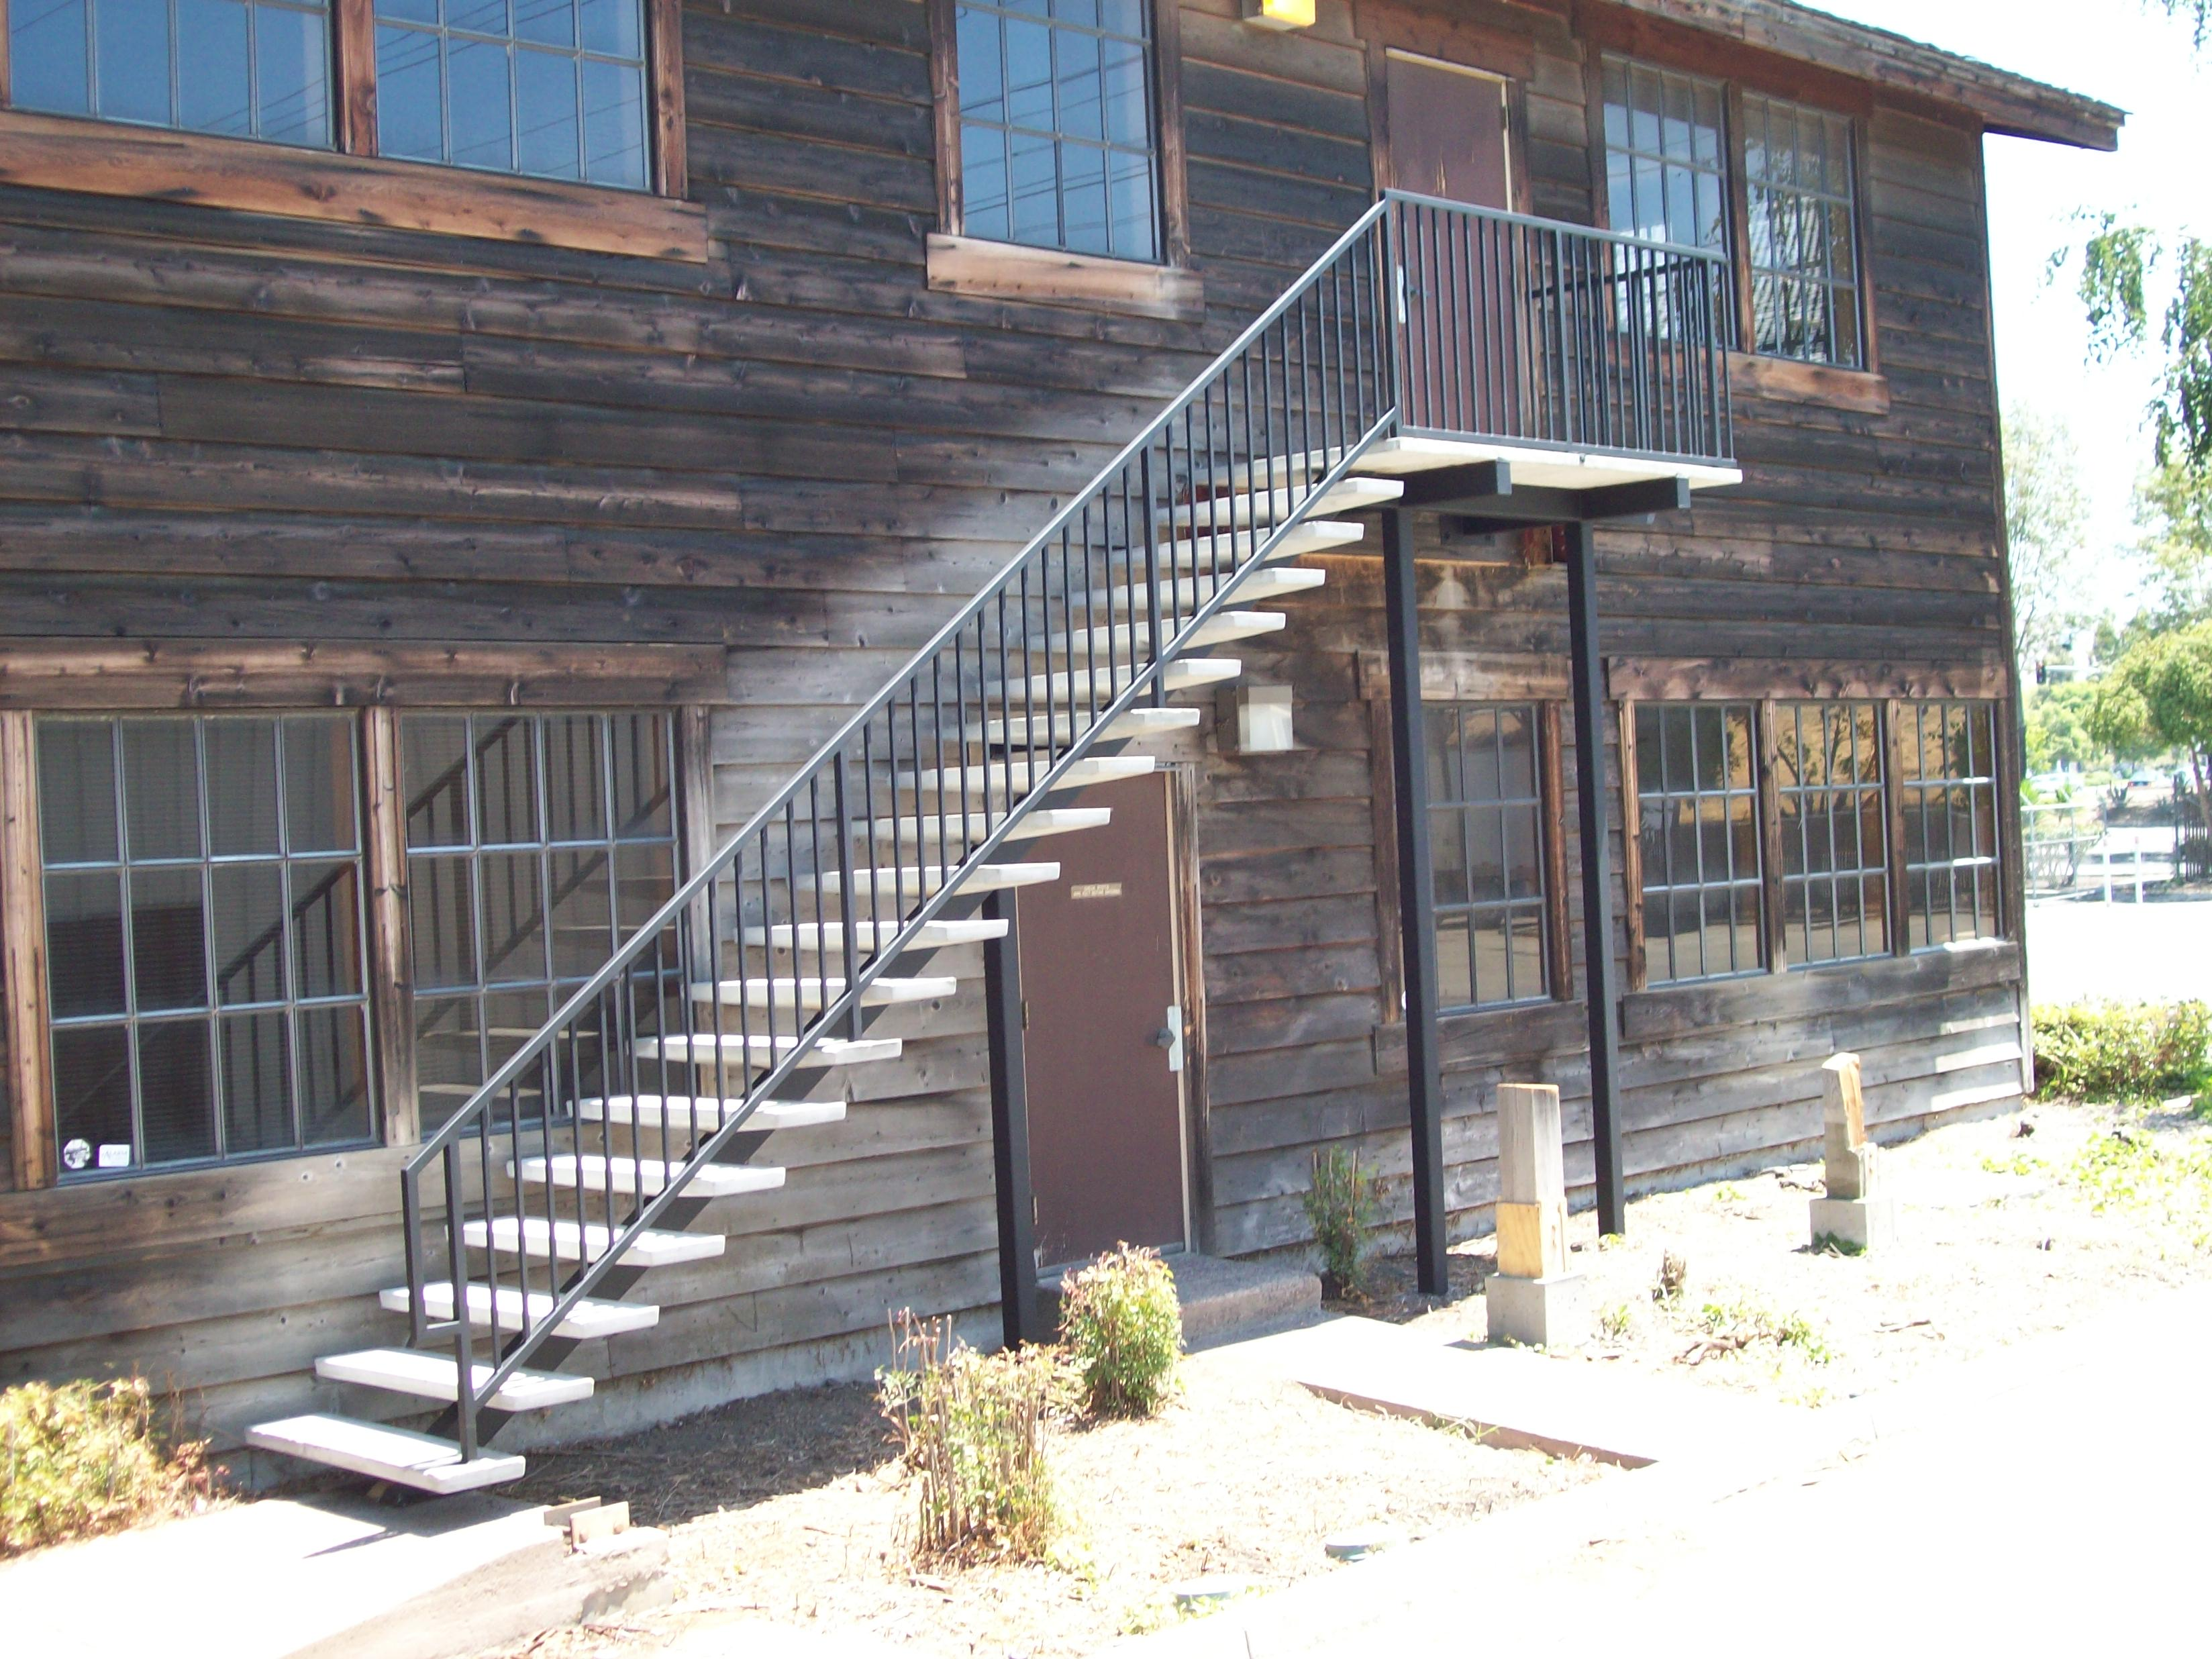 Simple Iron Railing: Simple Iron Stair Railing